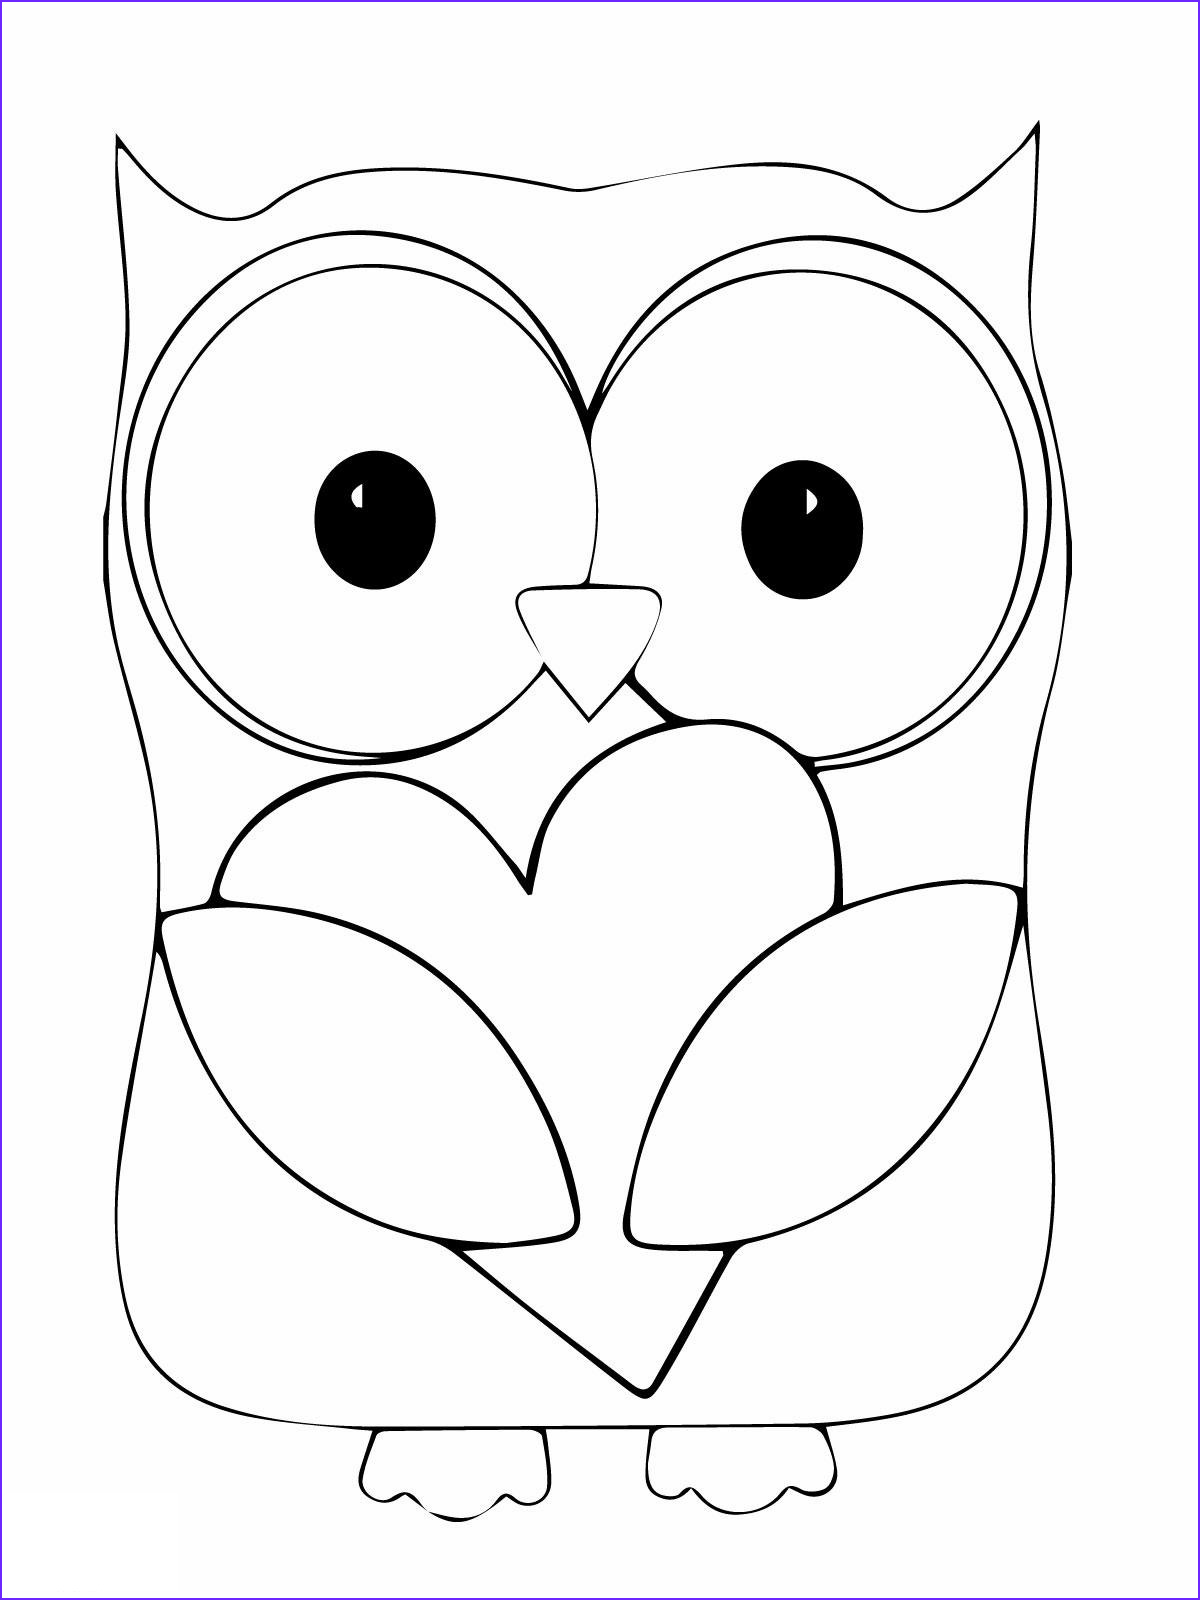 Free Printable Owl Coloring Pages Beautiful Gallery Owl Coloring Pages